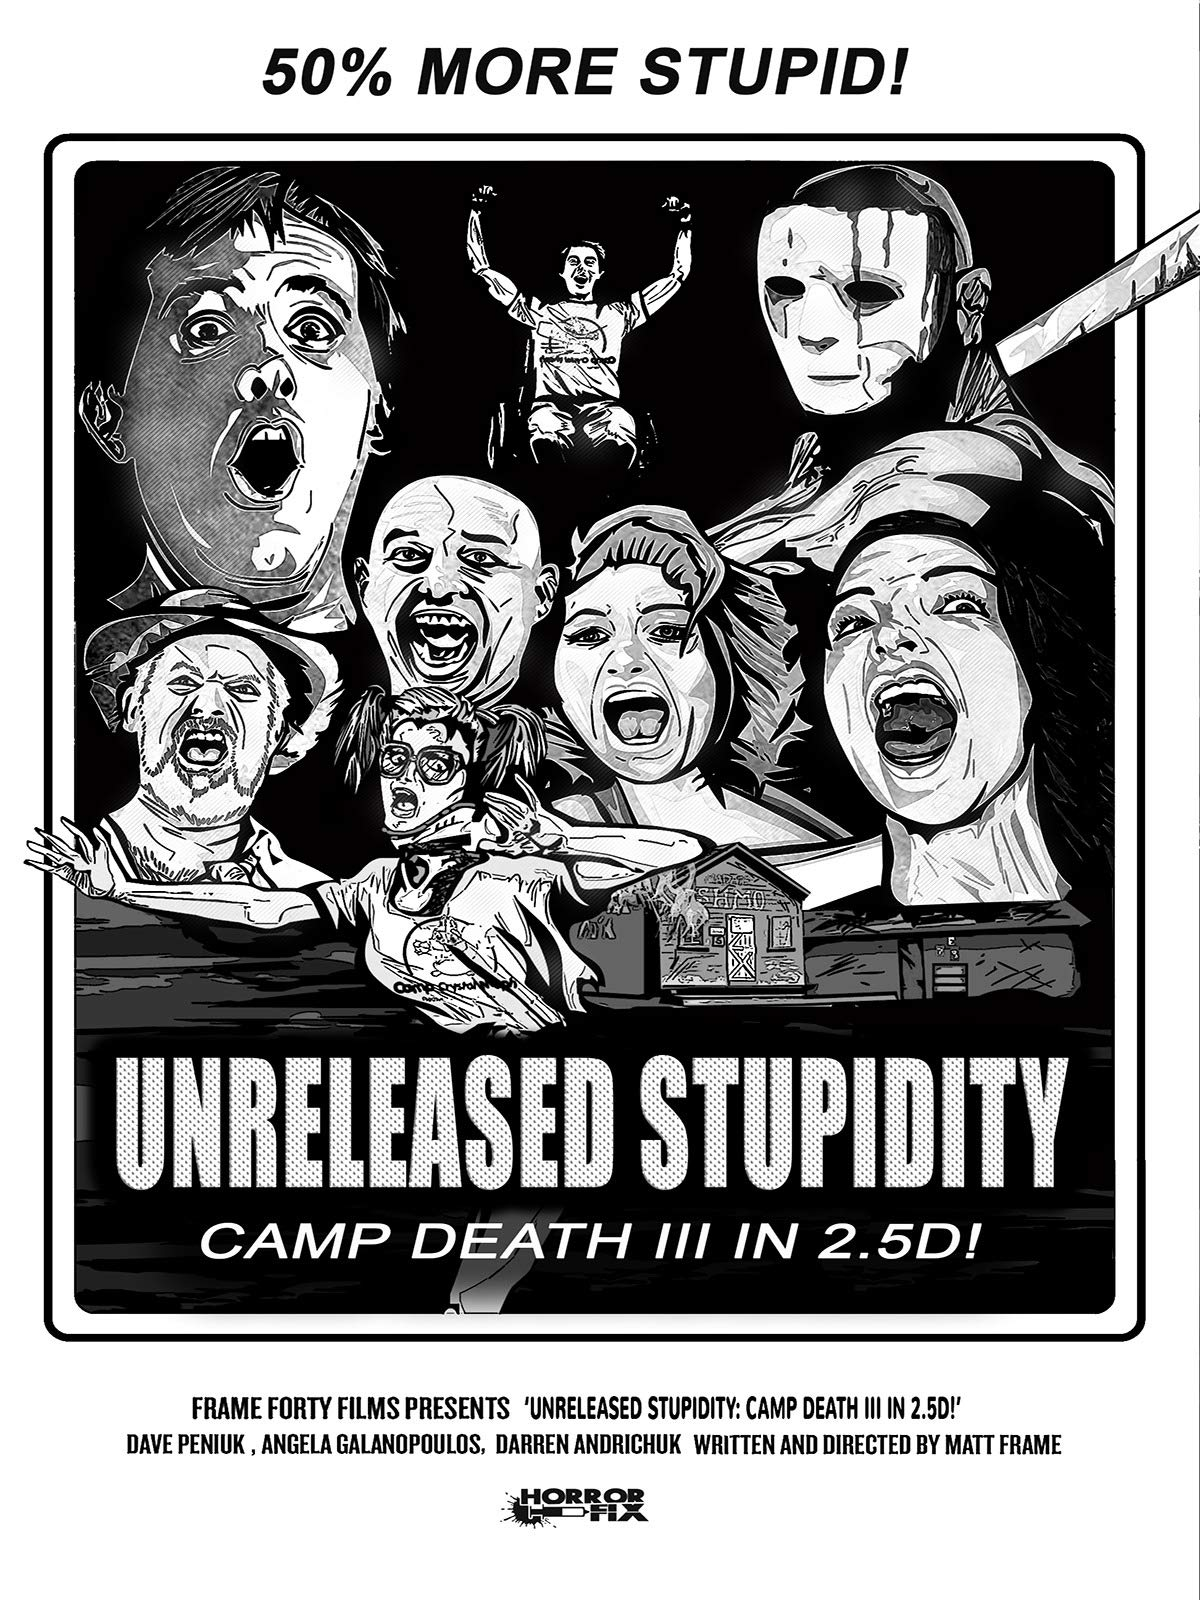 Unreleased Stupidity: Camp Death III in 2.5D!